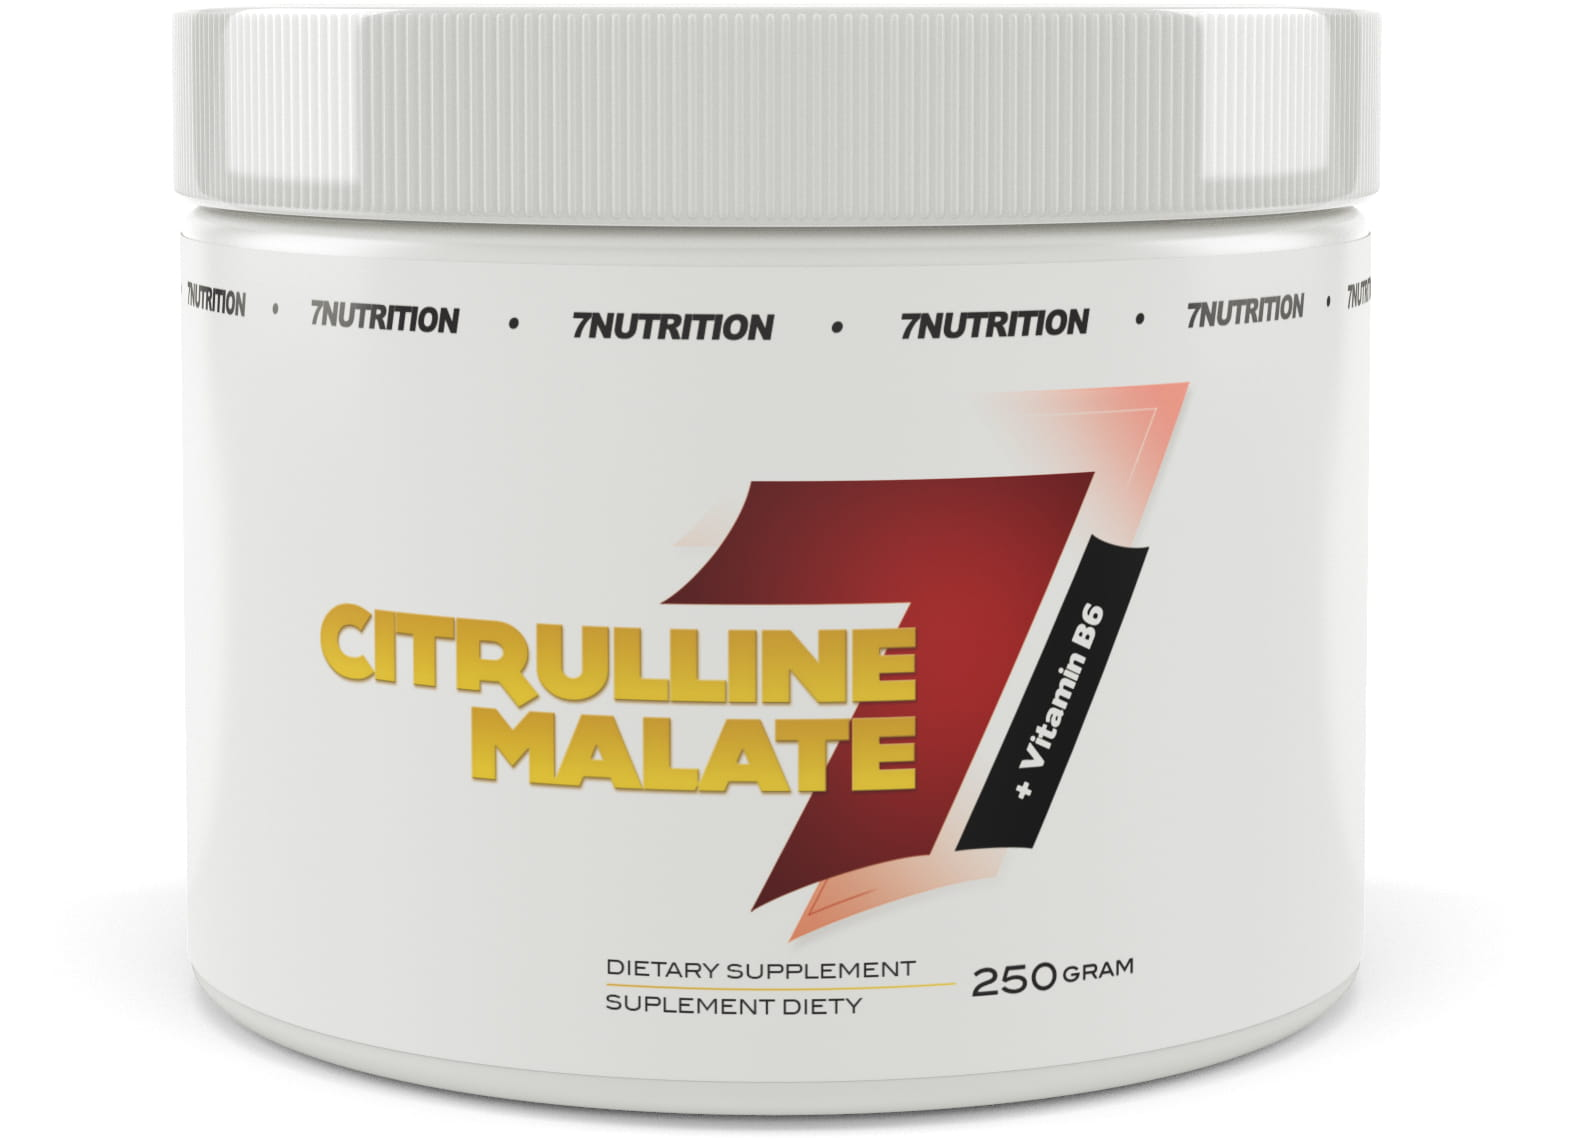 Image of 7NUTRITION CITRULLINE MALATE 250G